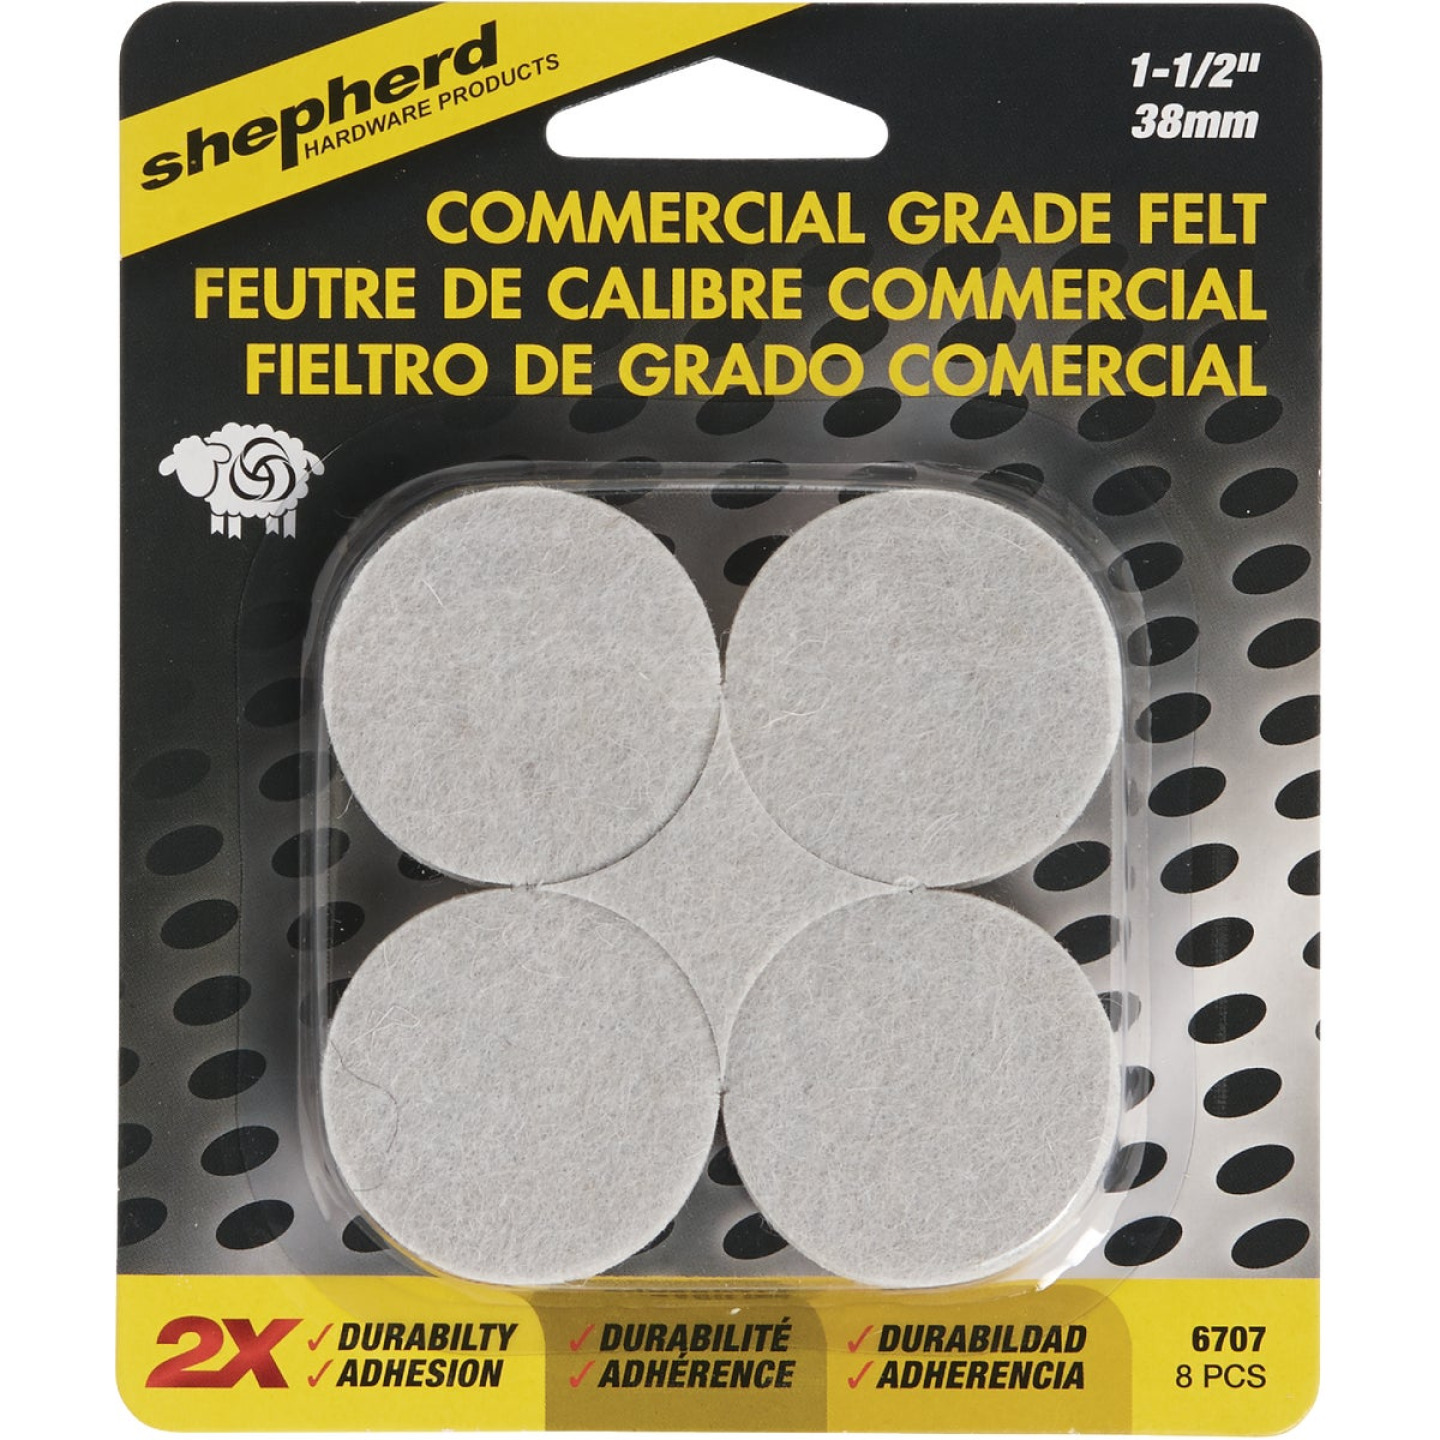 Shepherd 1-1/2 In. Beige Self-Adhesive Commercial Grade Felt Pads (8-Count) Image 2